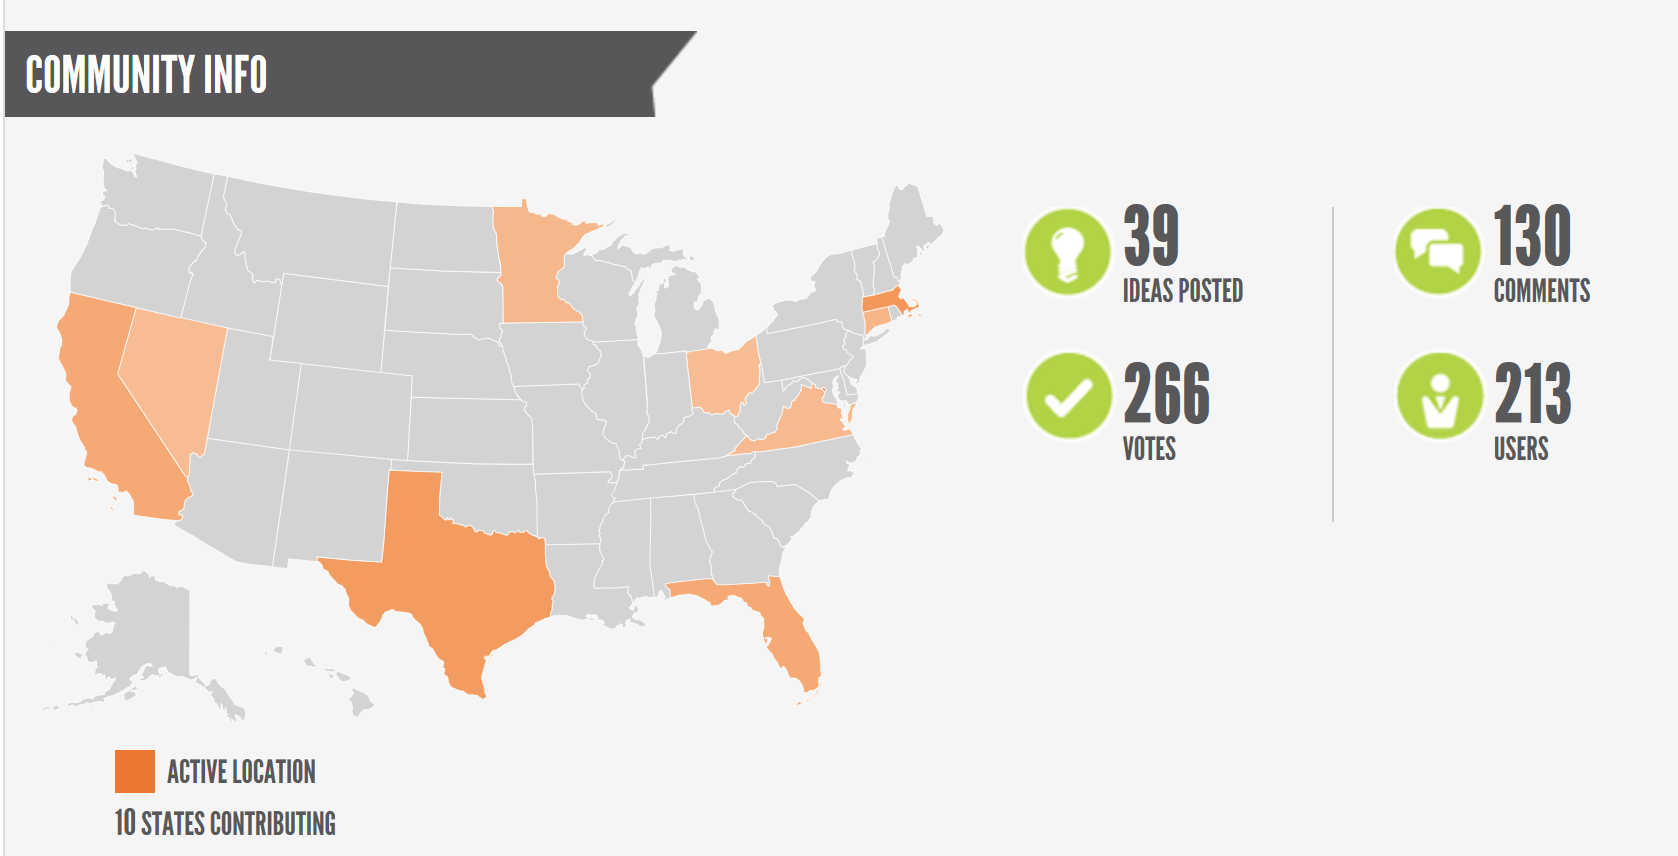 """An infographic titled """"Community Info"""" with a map of the United States on which the 10 states with active dialogue participants are highlighted. The infographic also summarizes participation, including 39 ideas posted, 266 votes, 130 comments, 213 users."""